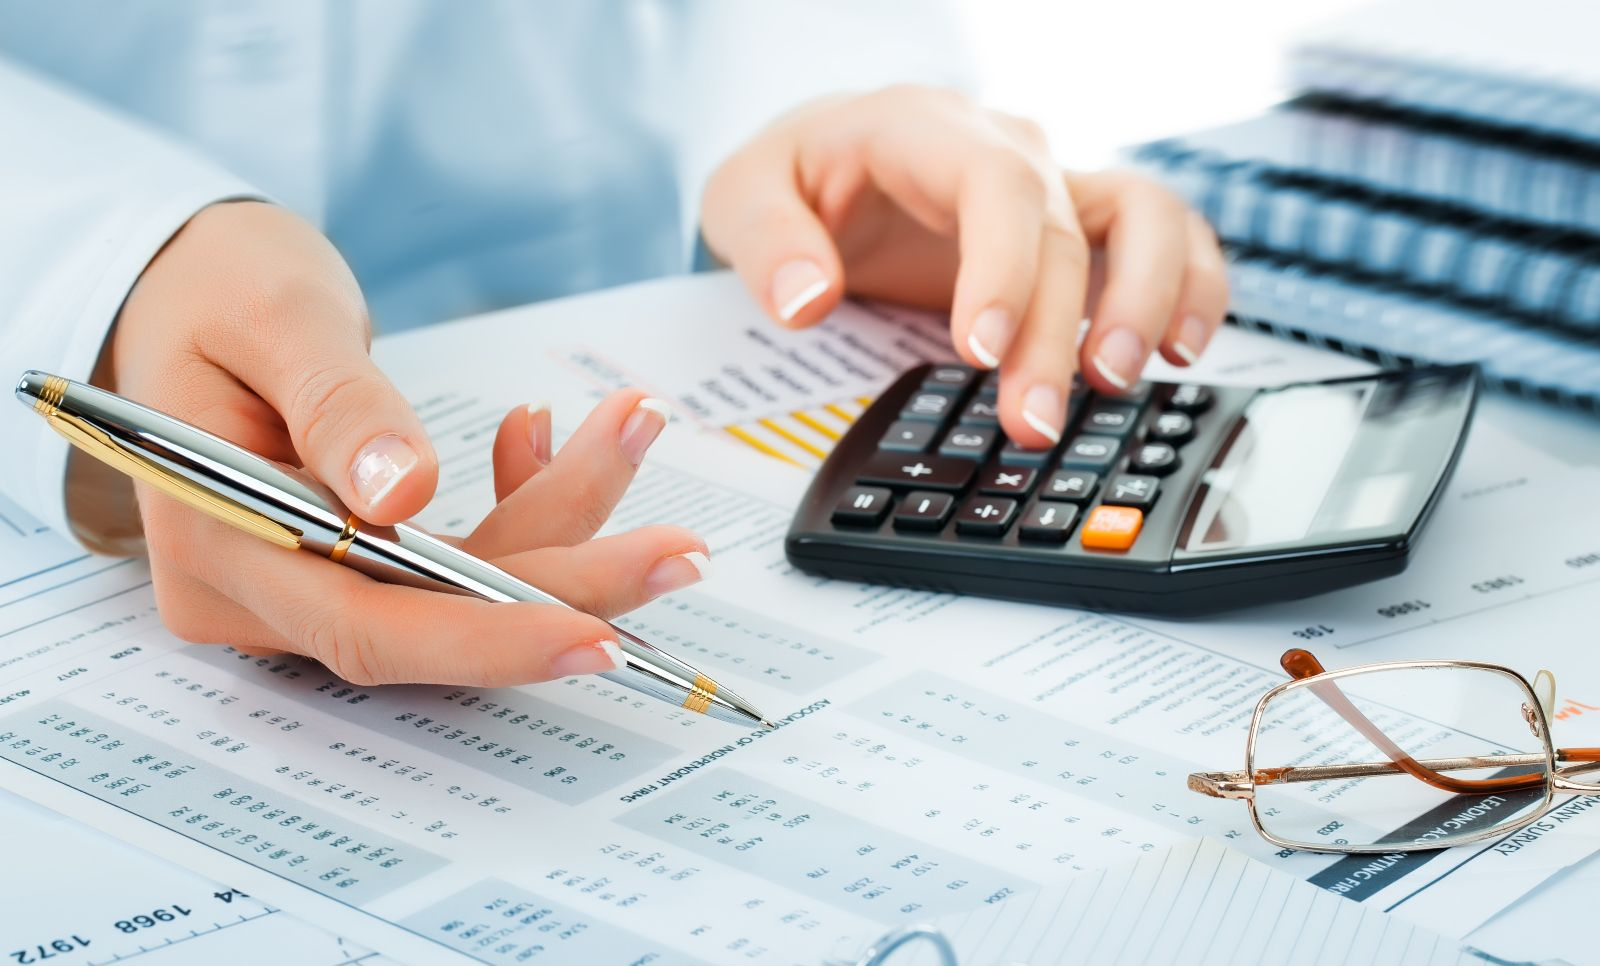 6 Business Accounting Tips To Properly Manage Your Numbers